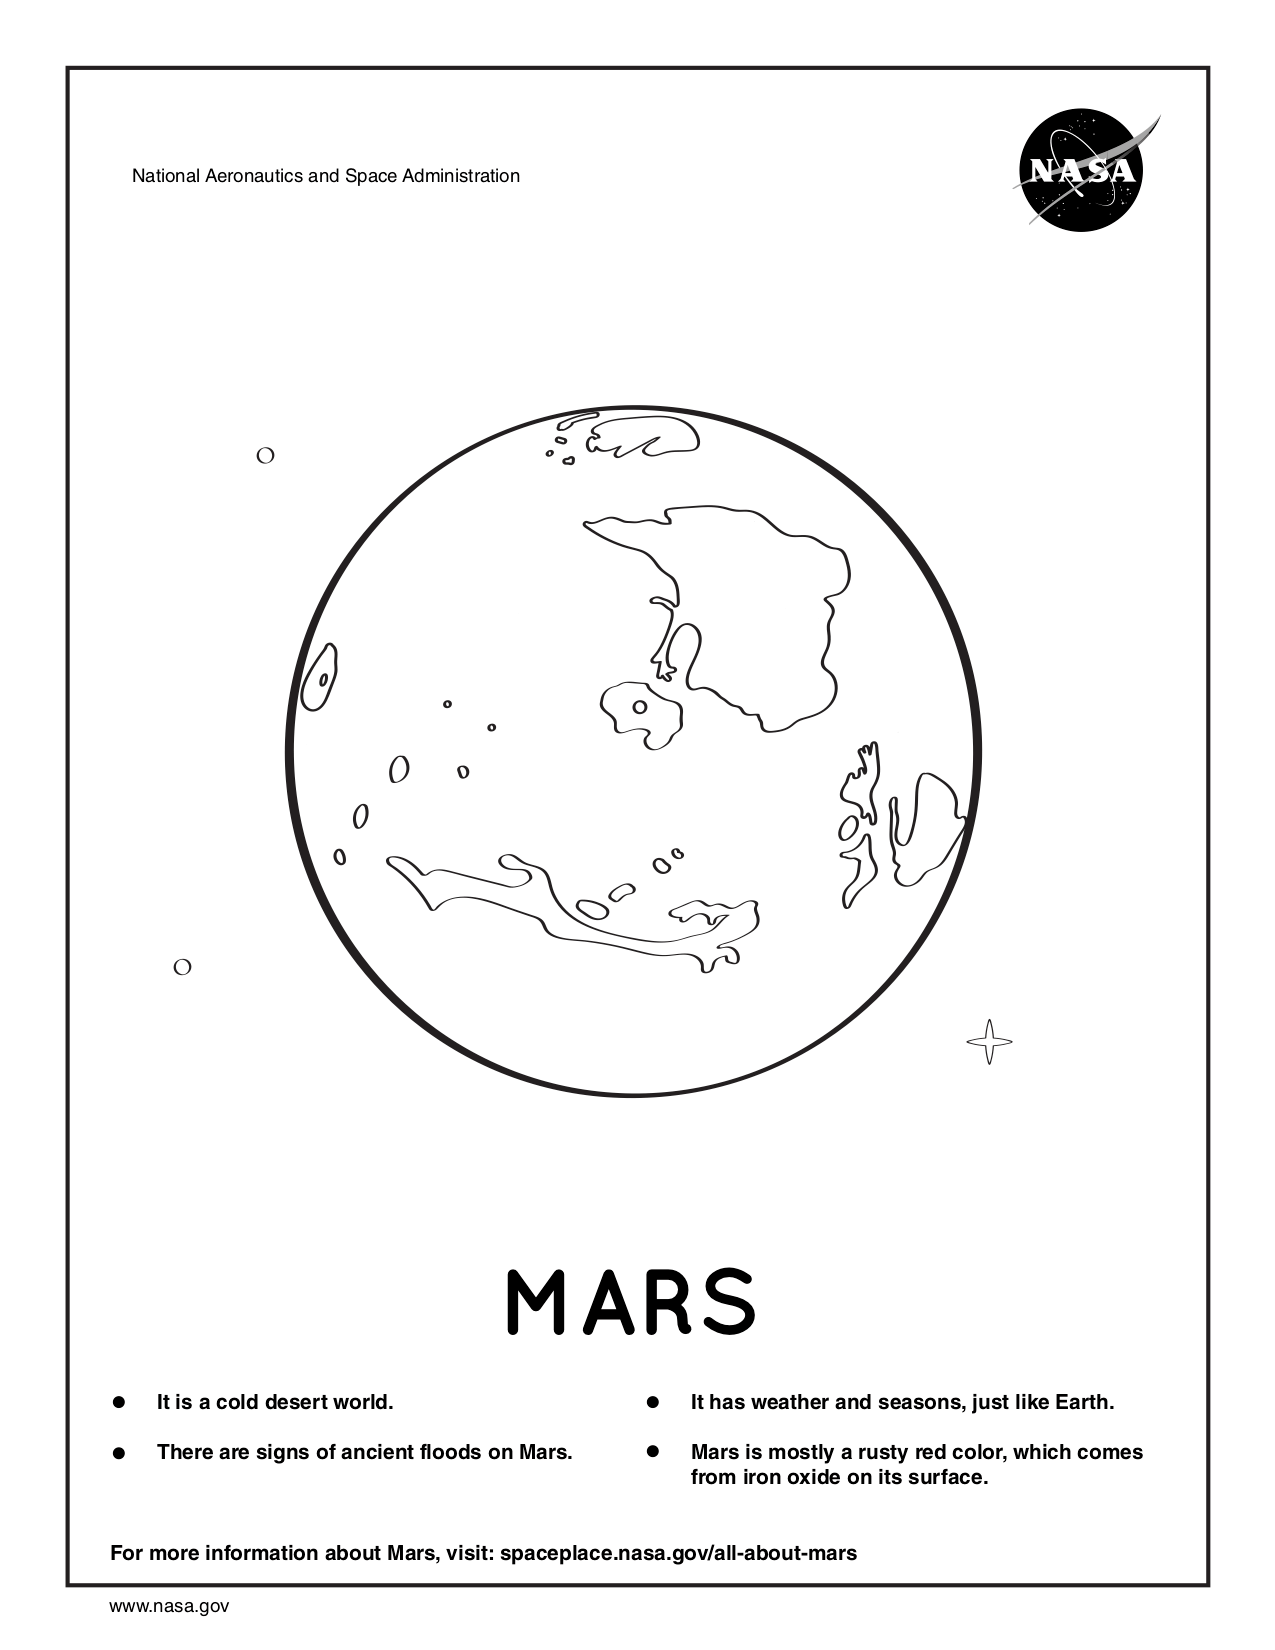 Coloring page for Mars.